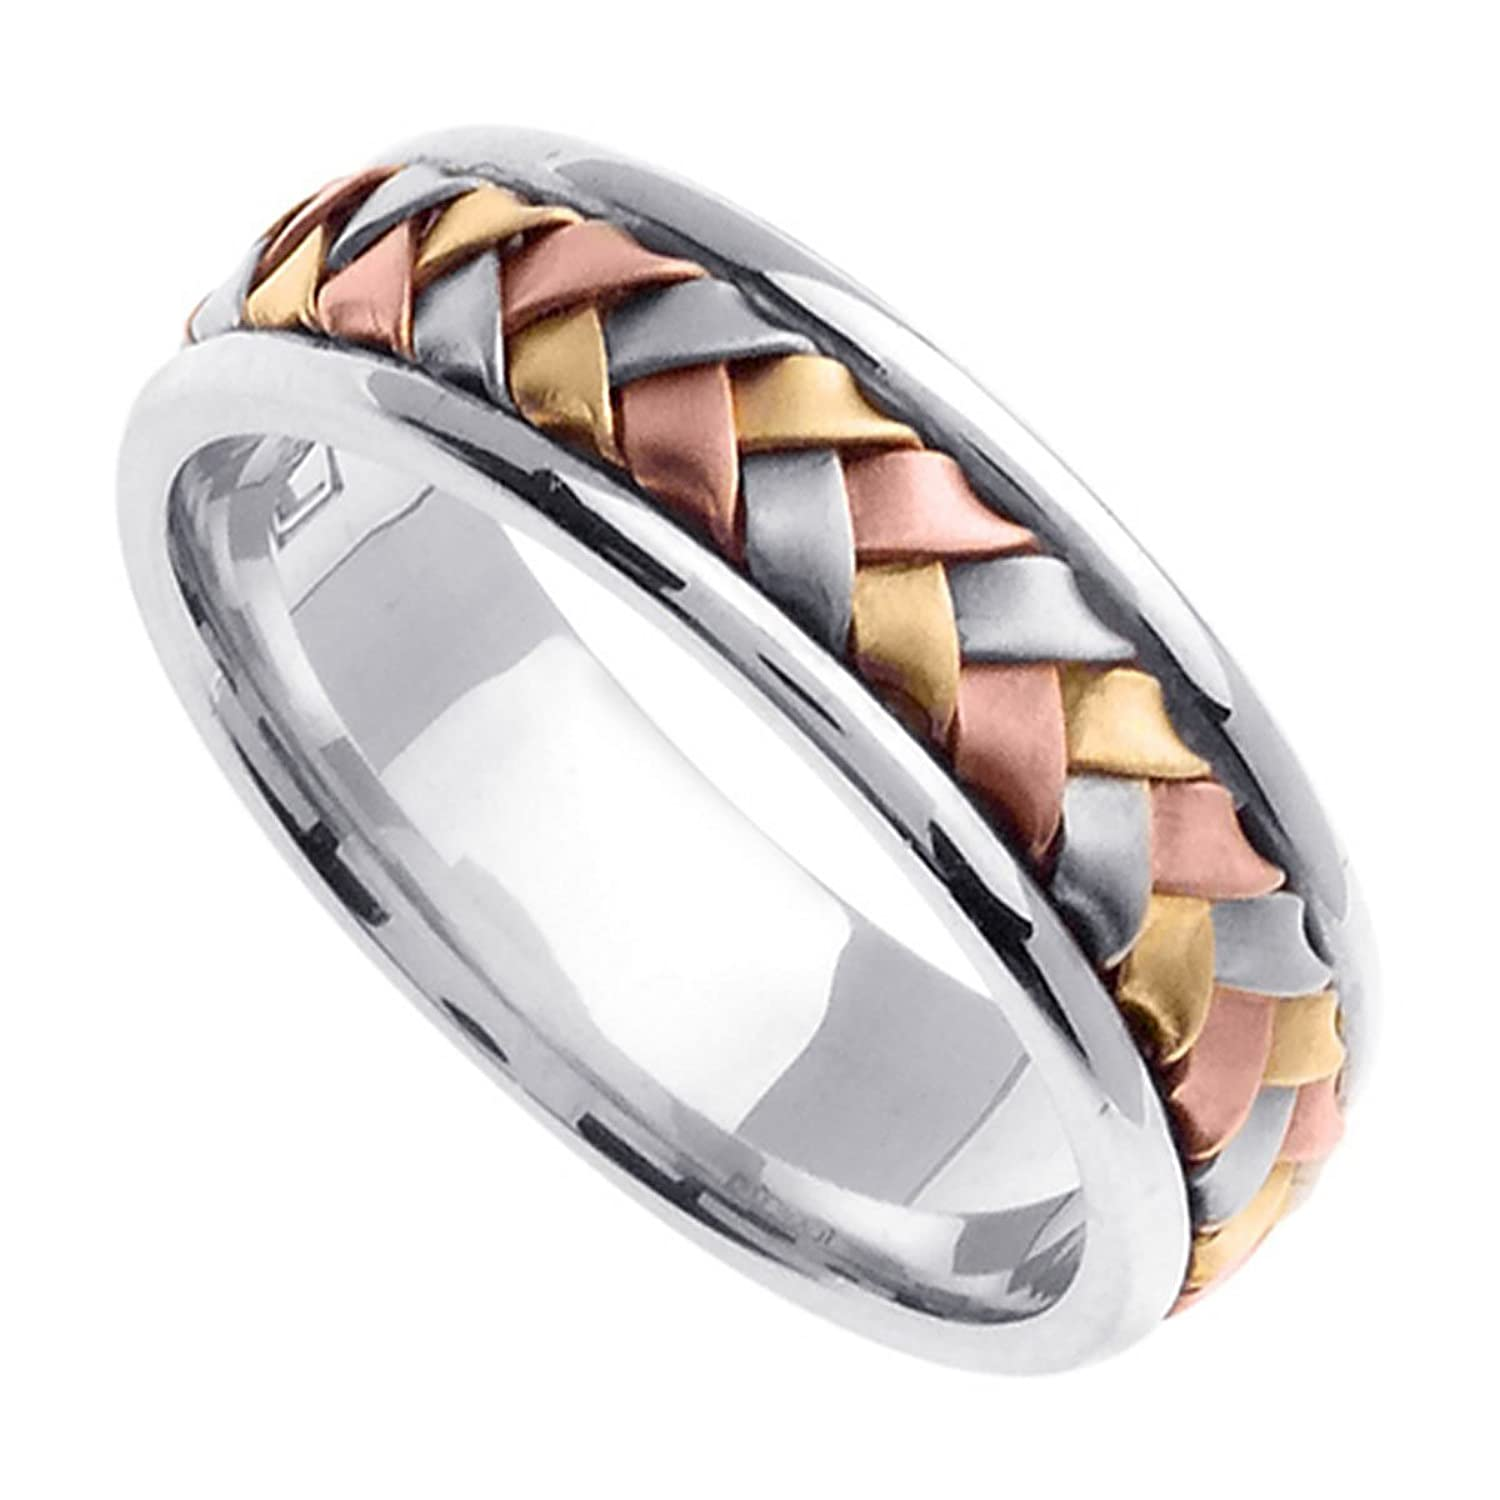 Tri Color Braided Wedding Ring for Men 7mm